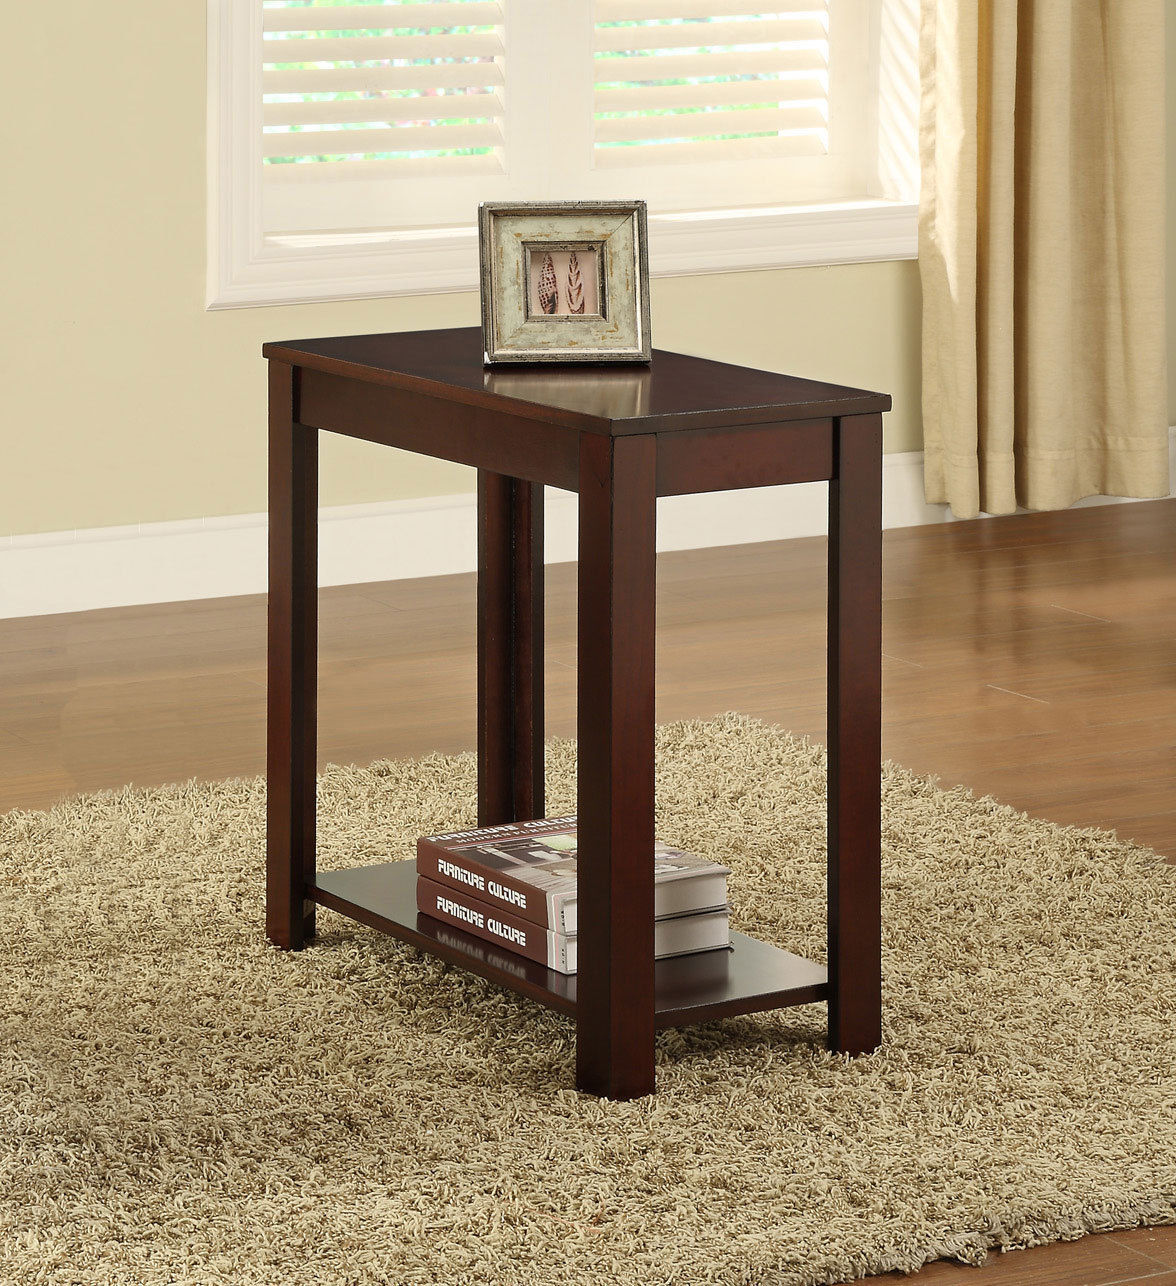 Primary image for Warm Cherry Finish Accent Chairside Table with Shelf- Free shipping